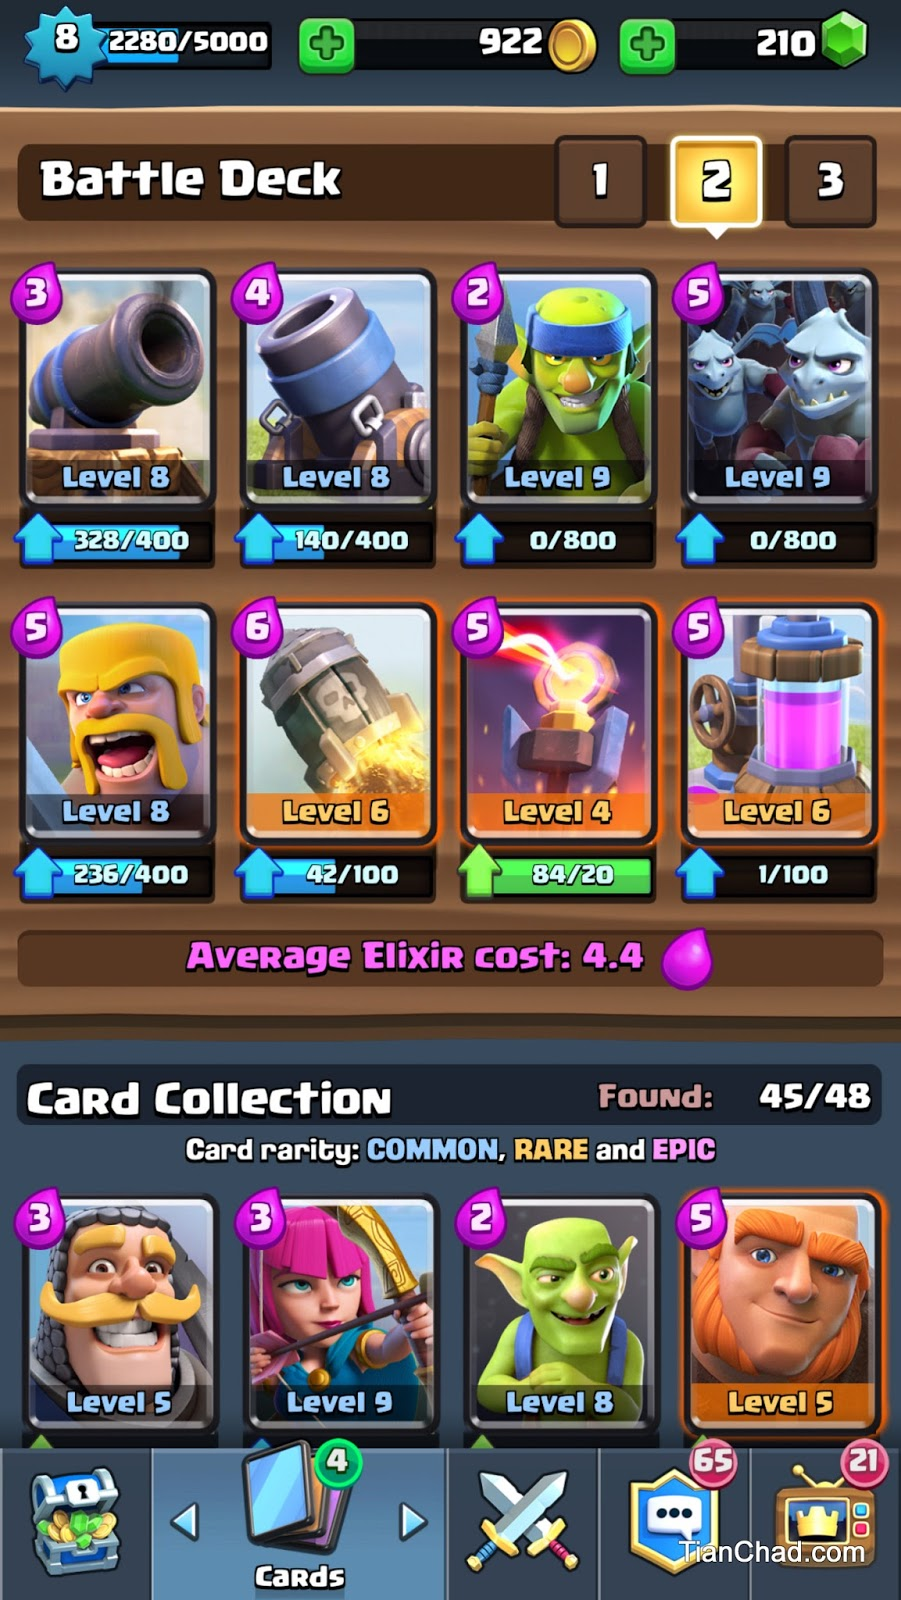 Clash royale best battle deck for arena 6 arena 7 for Deck pekka arene 6